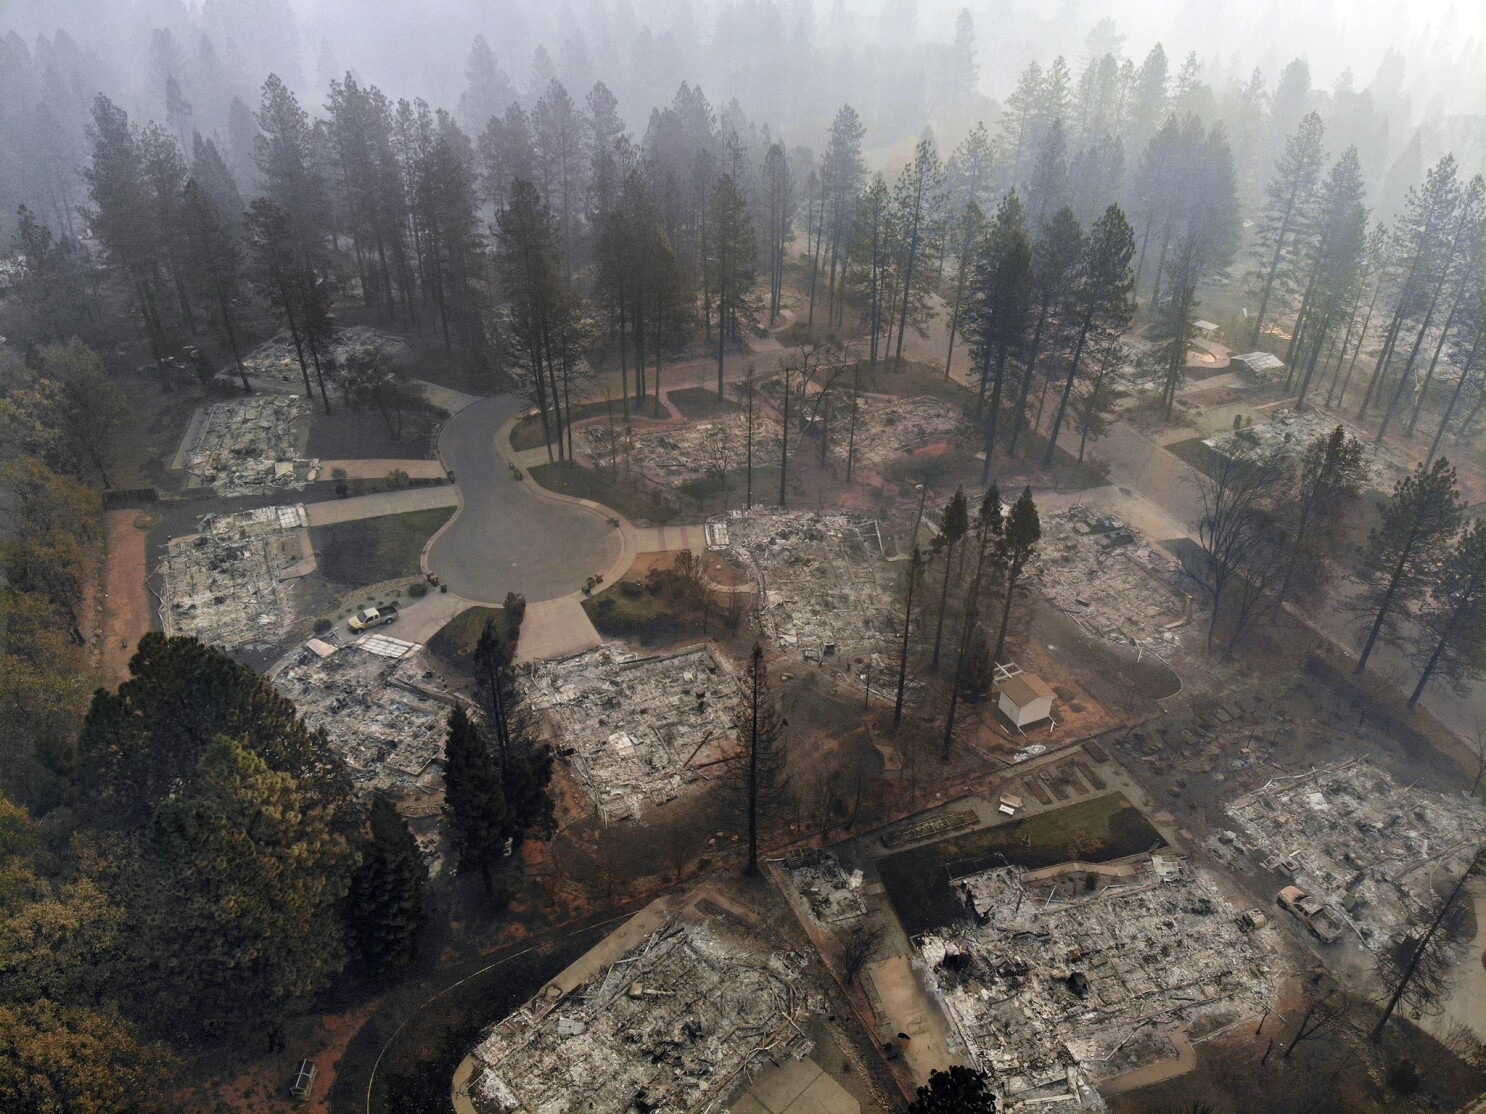 The Camp fire burned homes but left trees standing. The science behind the fire's path - Los Angeles Times